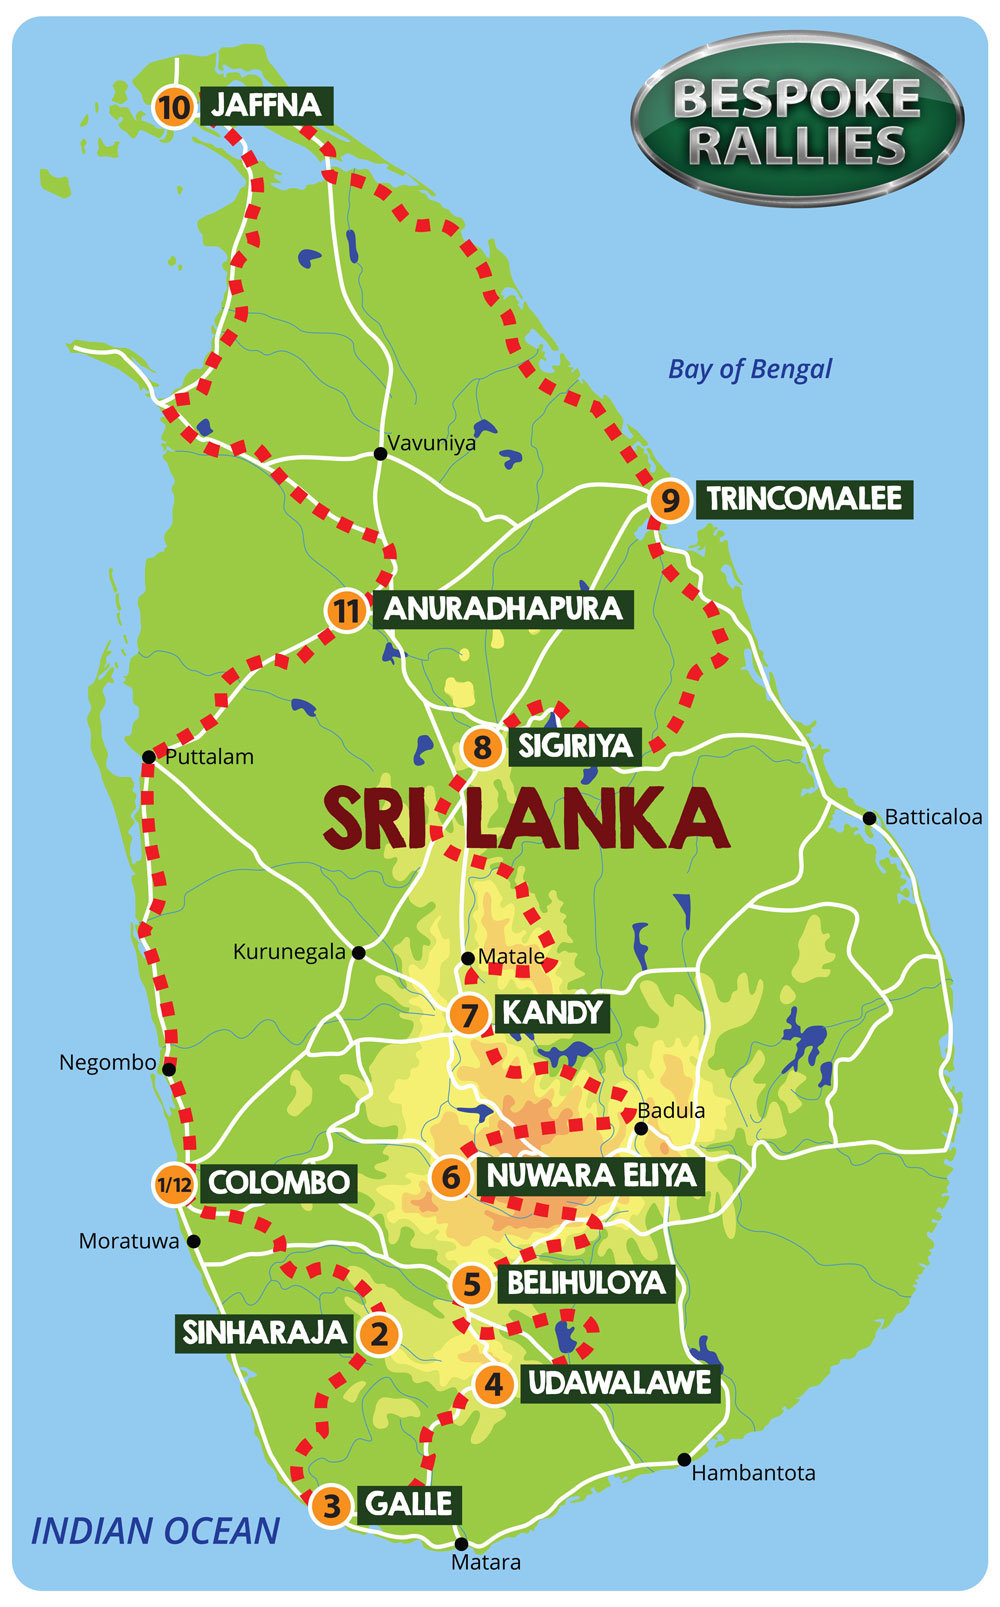 Bespoke Rallies - Sri Lanka Rally 2020, Worldwide Classic Car Rally & Touring Events